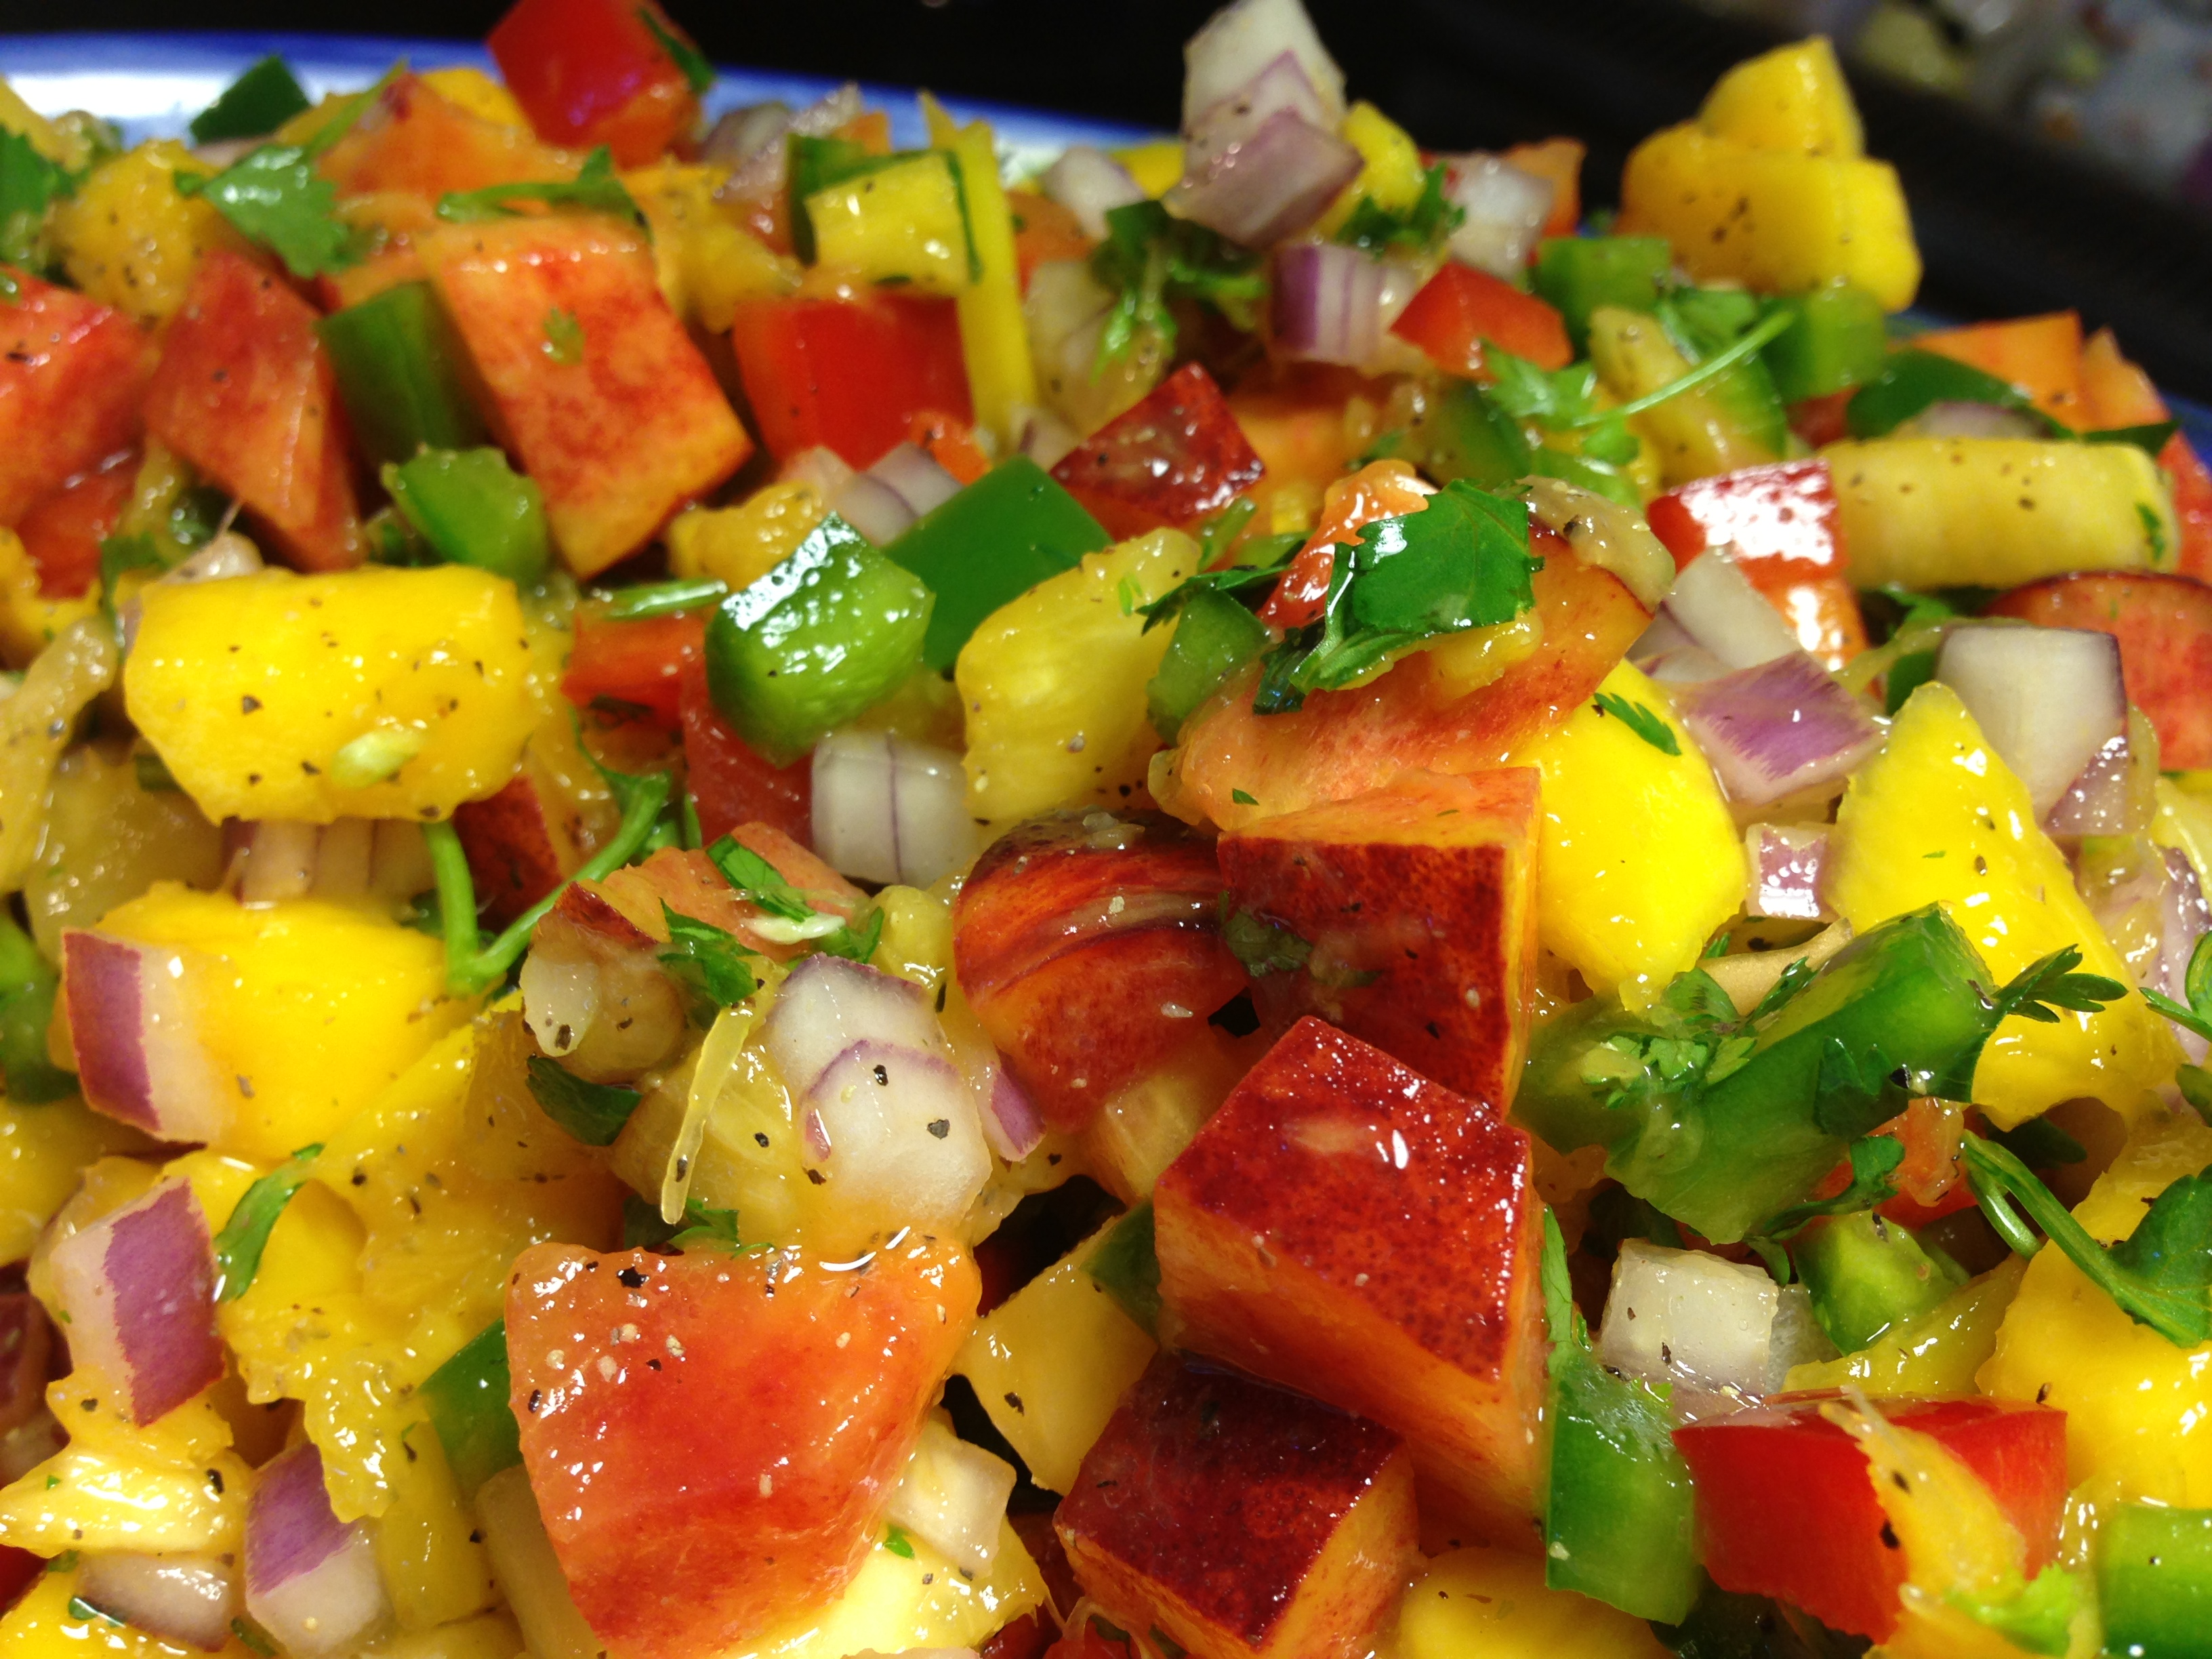 Spicy Peach, Pineapple & Mango Salsa with Jalapeno | Delightful ...